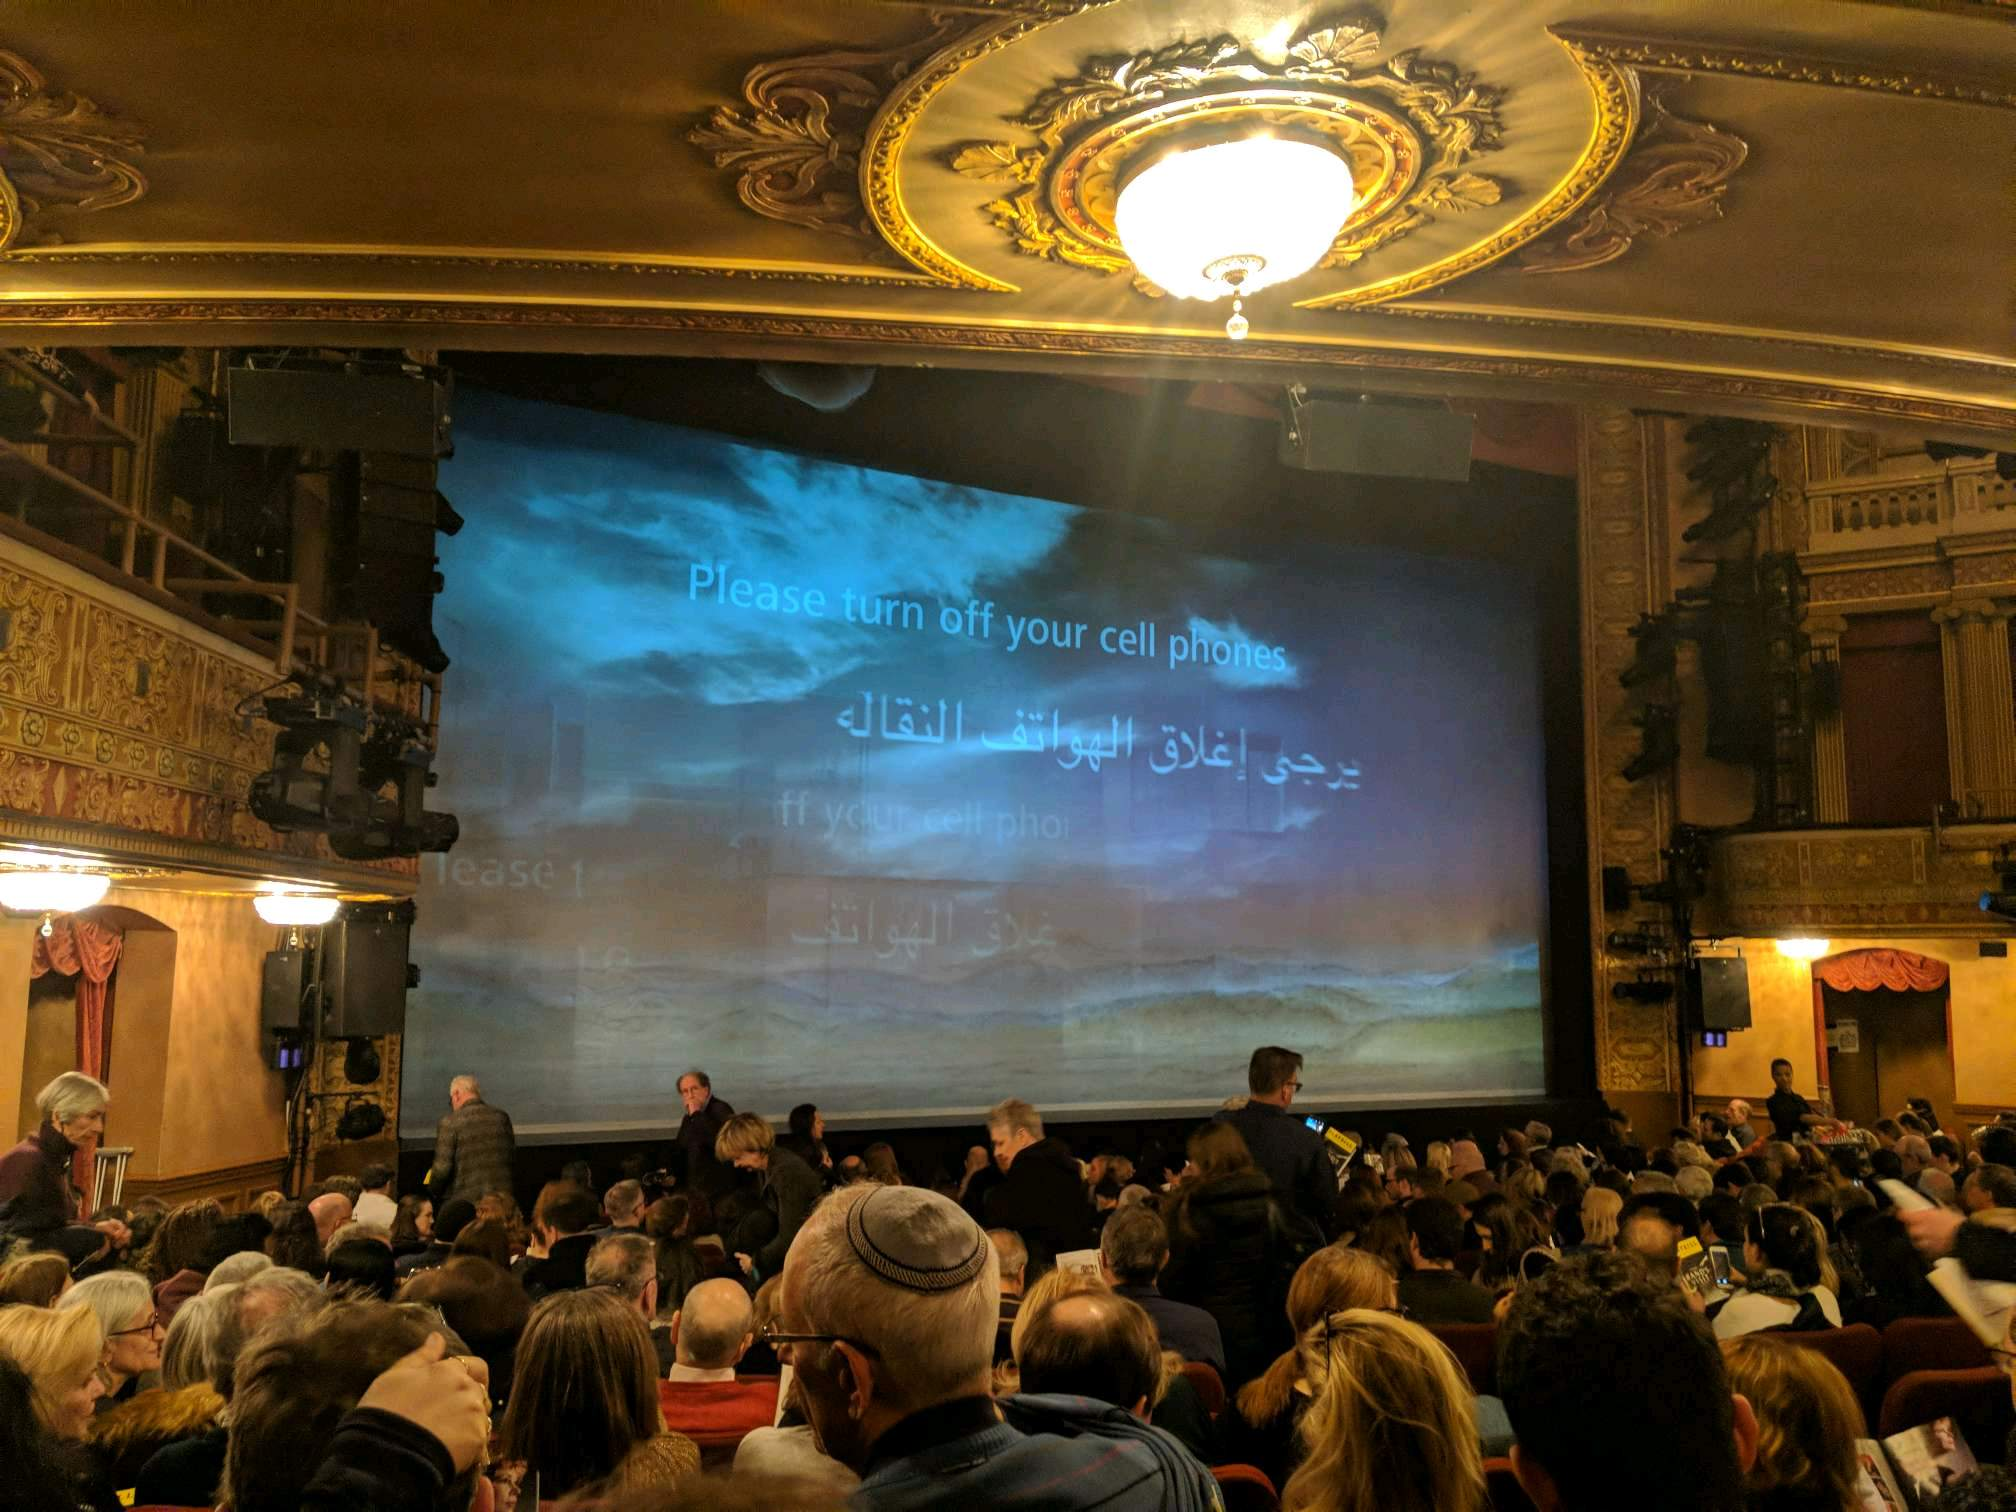 Ethel Barrymore Theatre Section Orchestra L Row O Seat 11